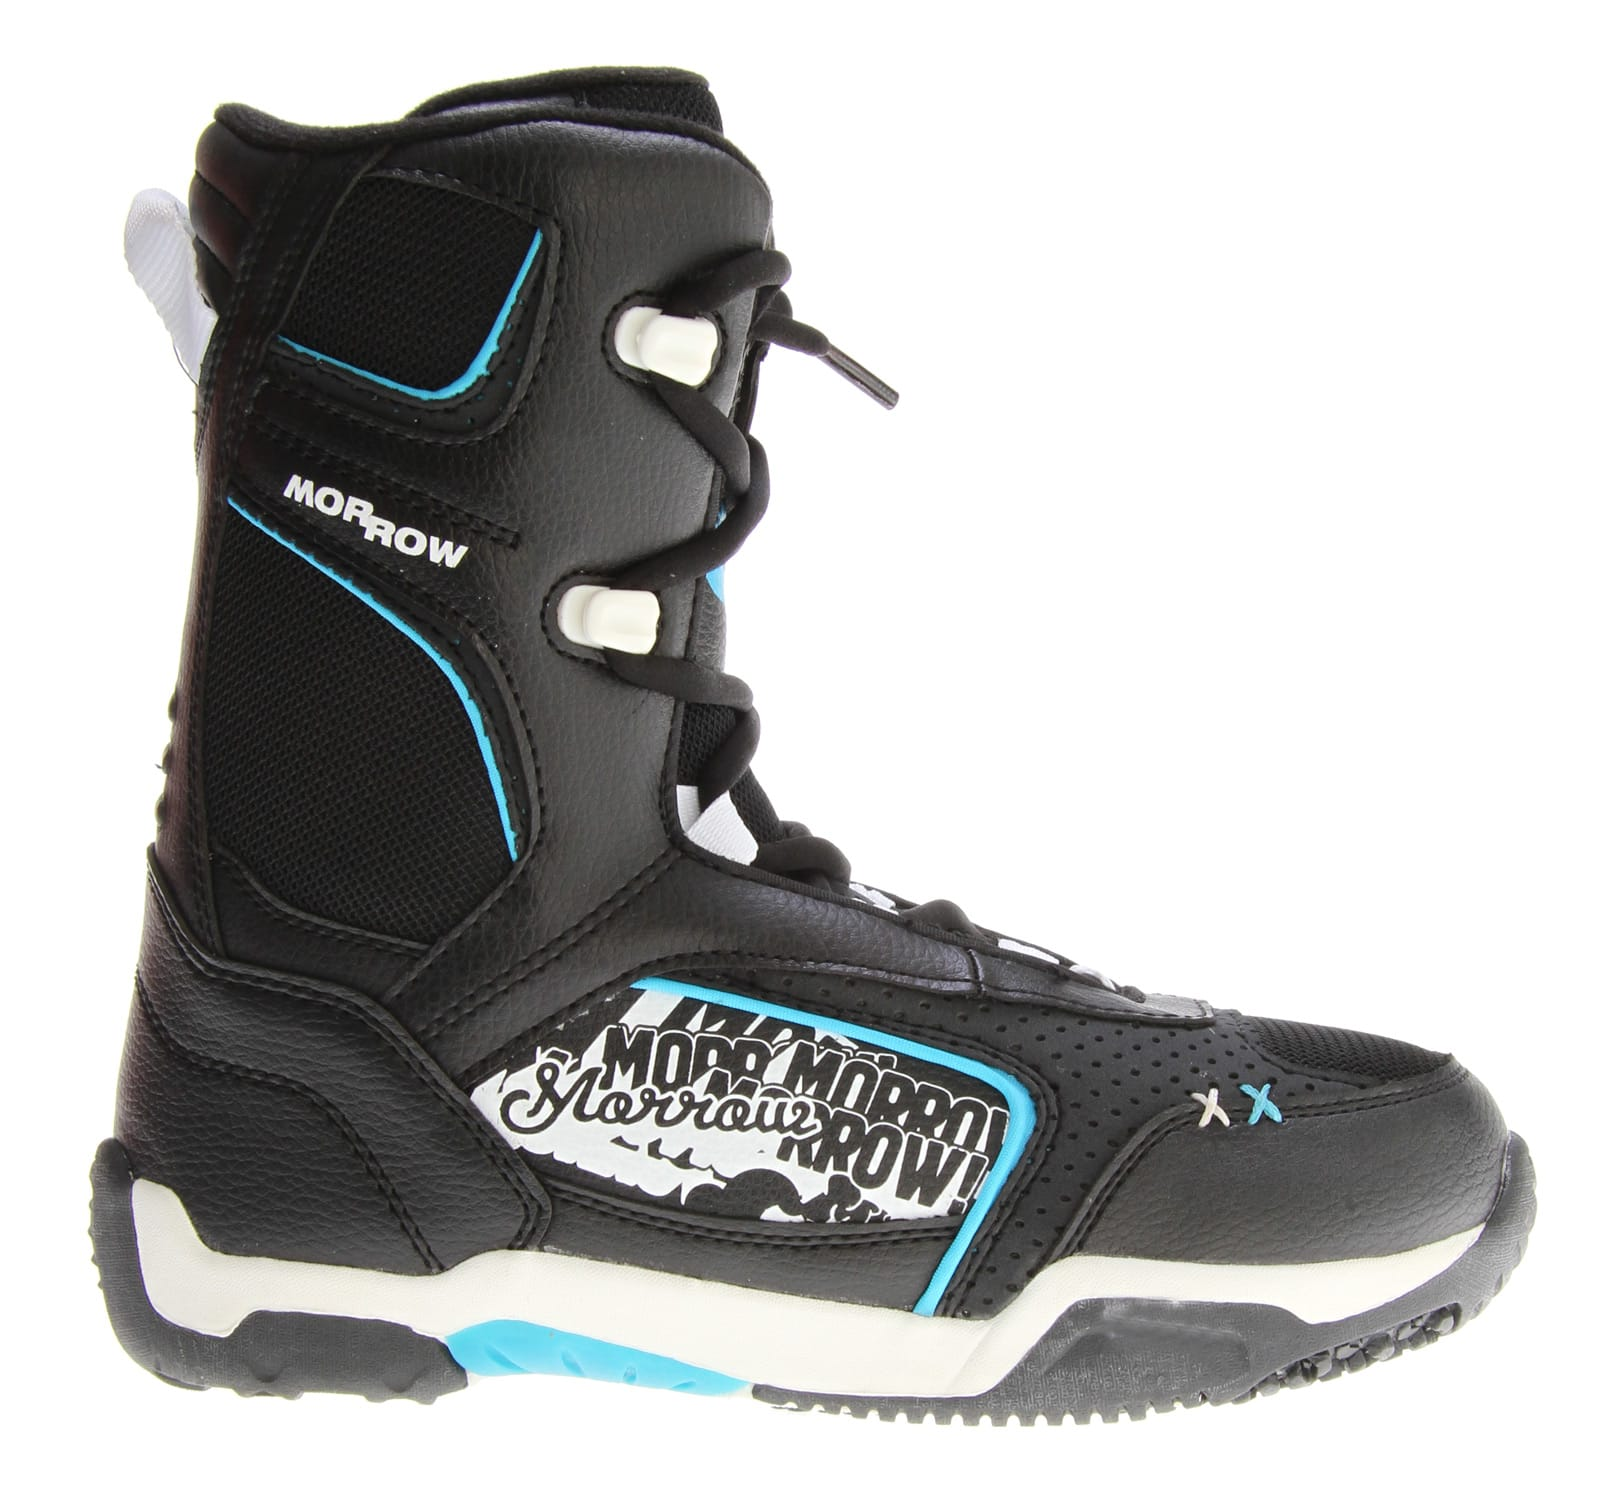 on sale morrow slick snowboard boots youth up to